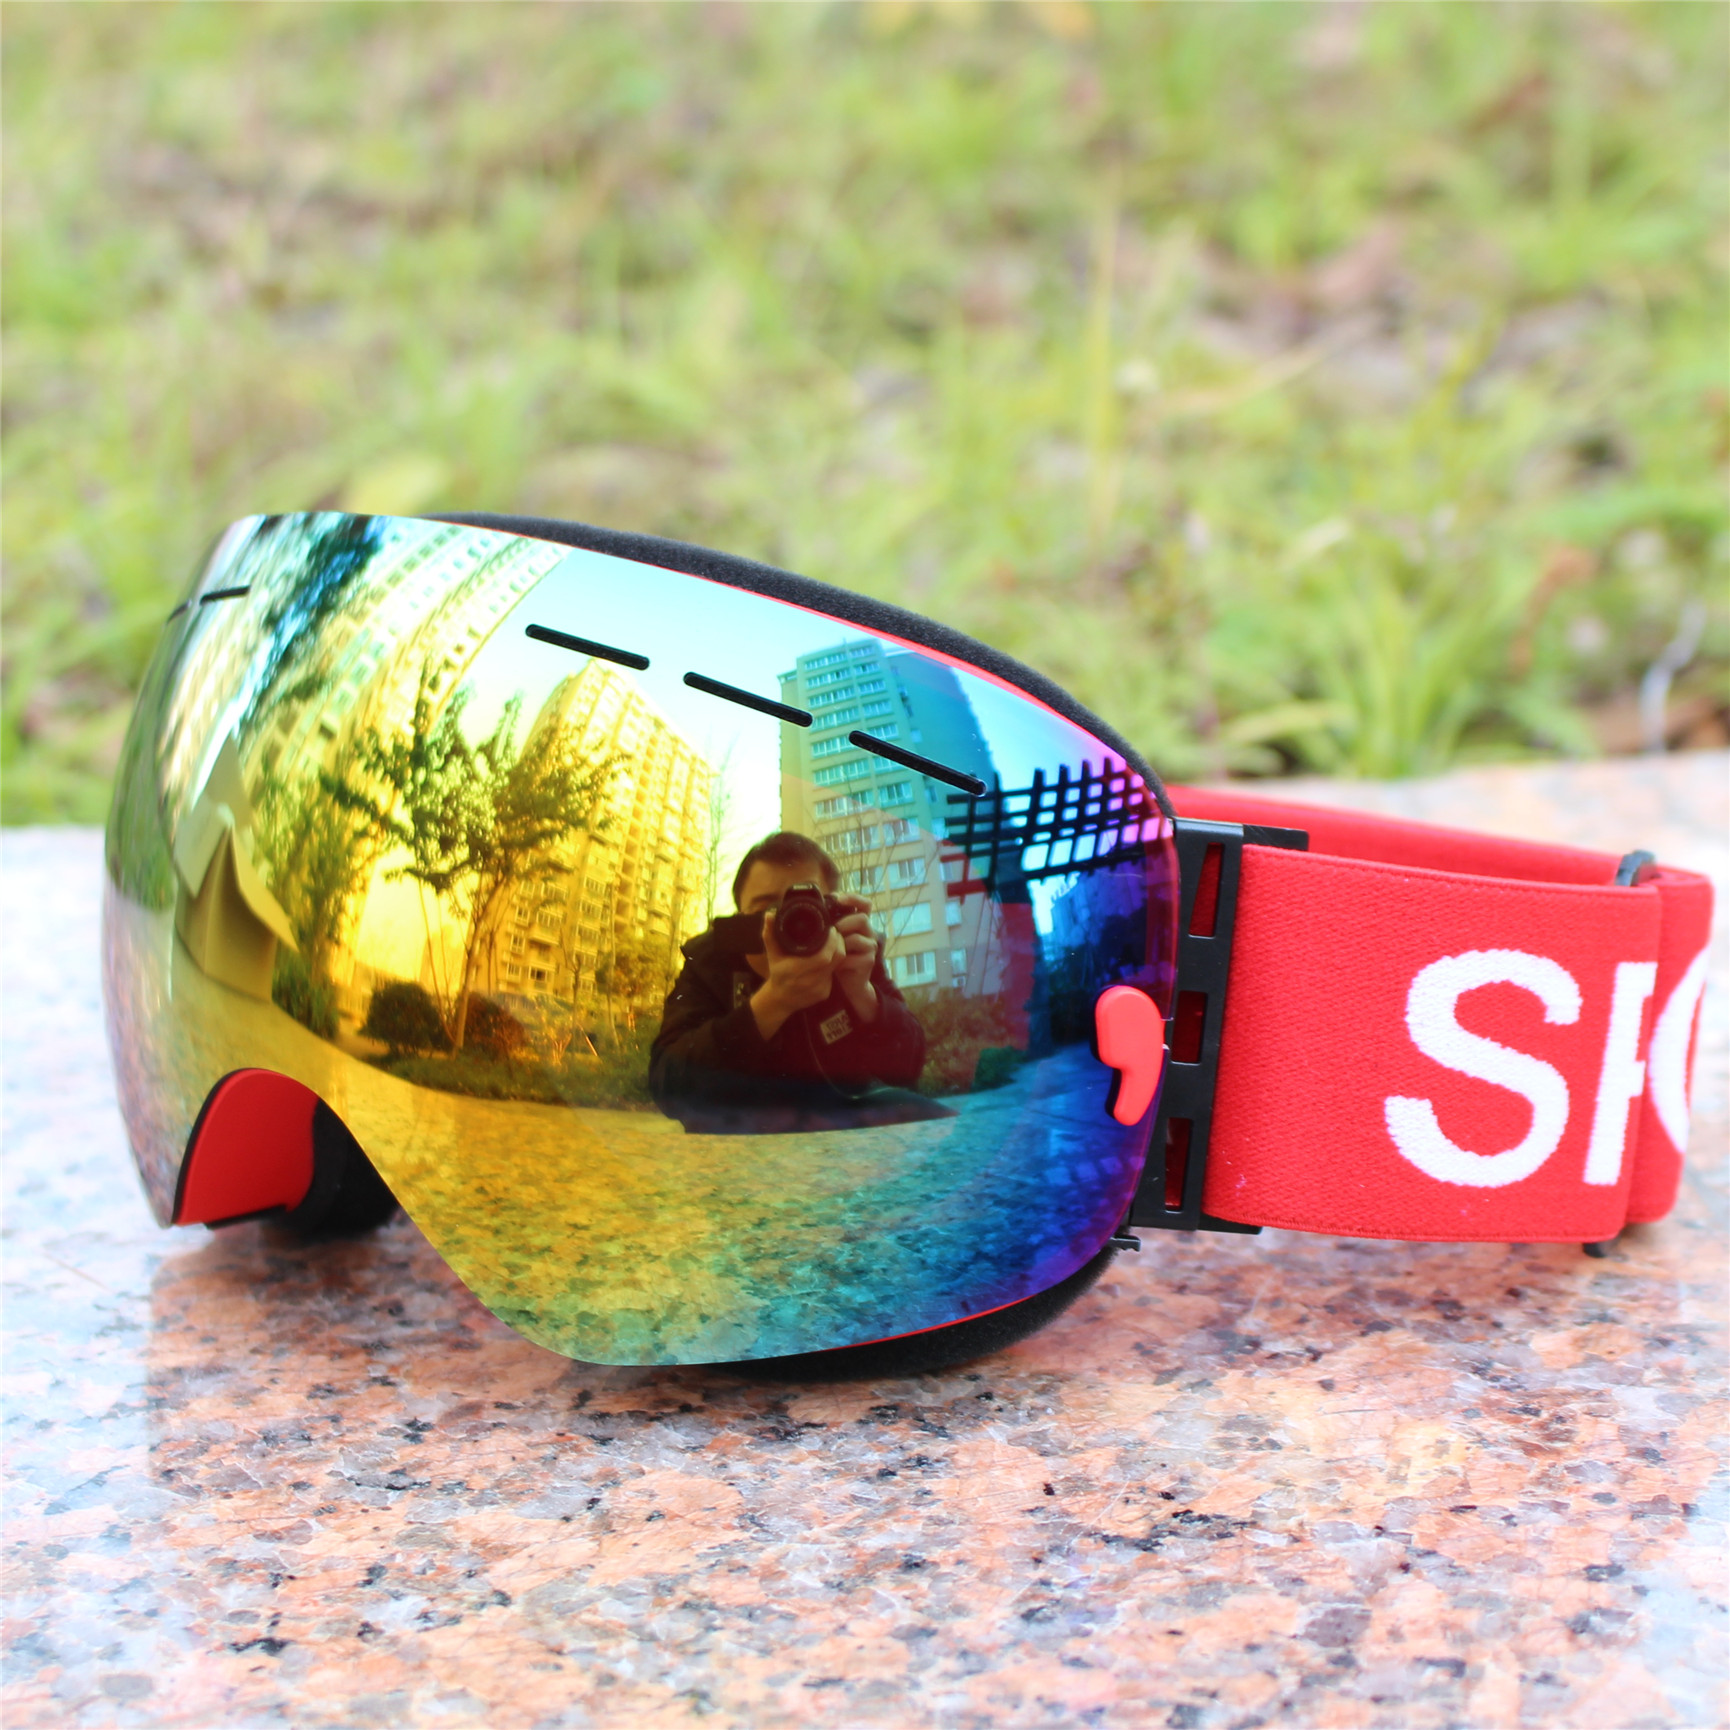 brand ski goggles layer UV400 anti-fog big ski mask glasses sunglasses skiing men women snow snowboard topeak outdoor sports cycling photochromic sun glasses bicycle sunglasses mtb nxt lenses glasses eyewear goggles 3 colors